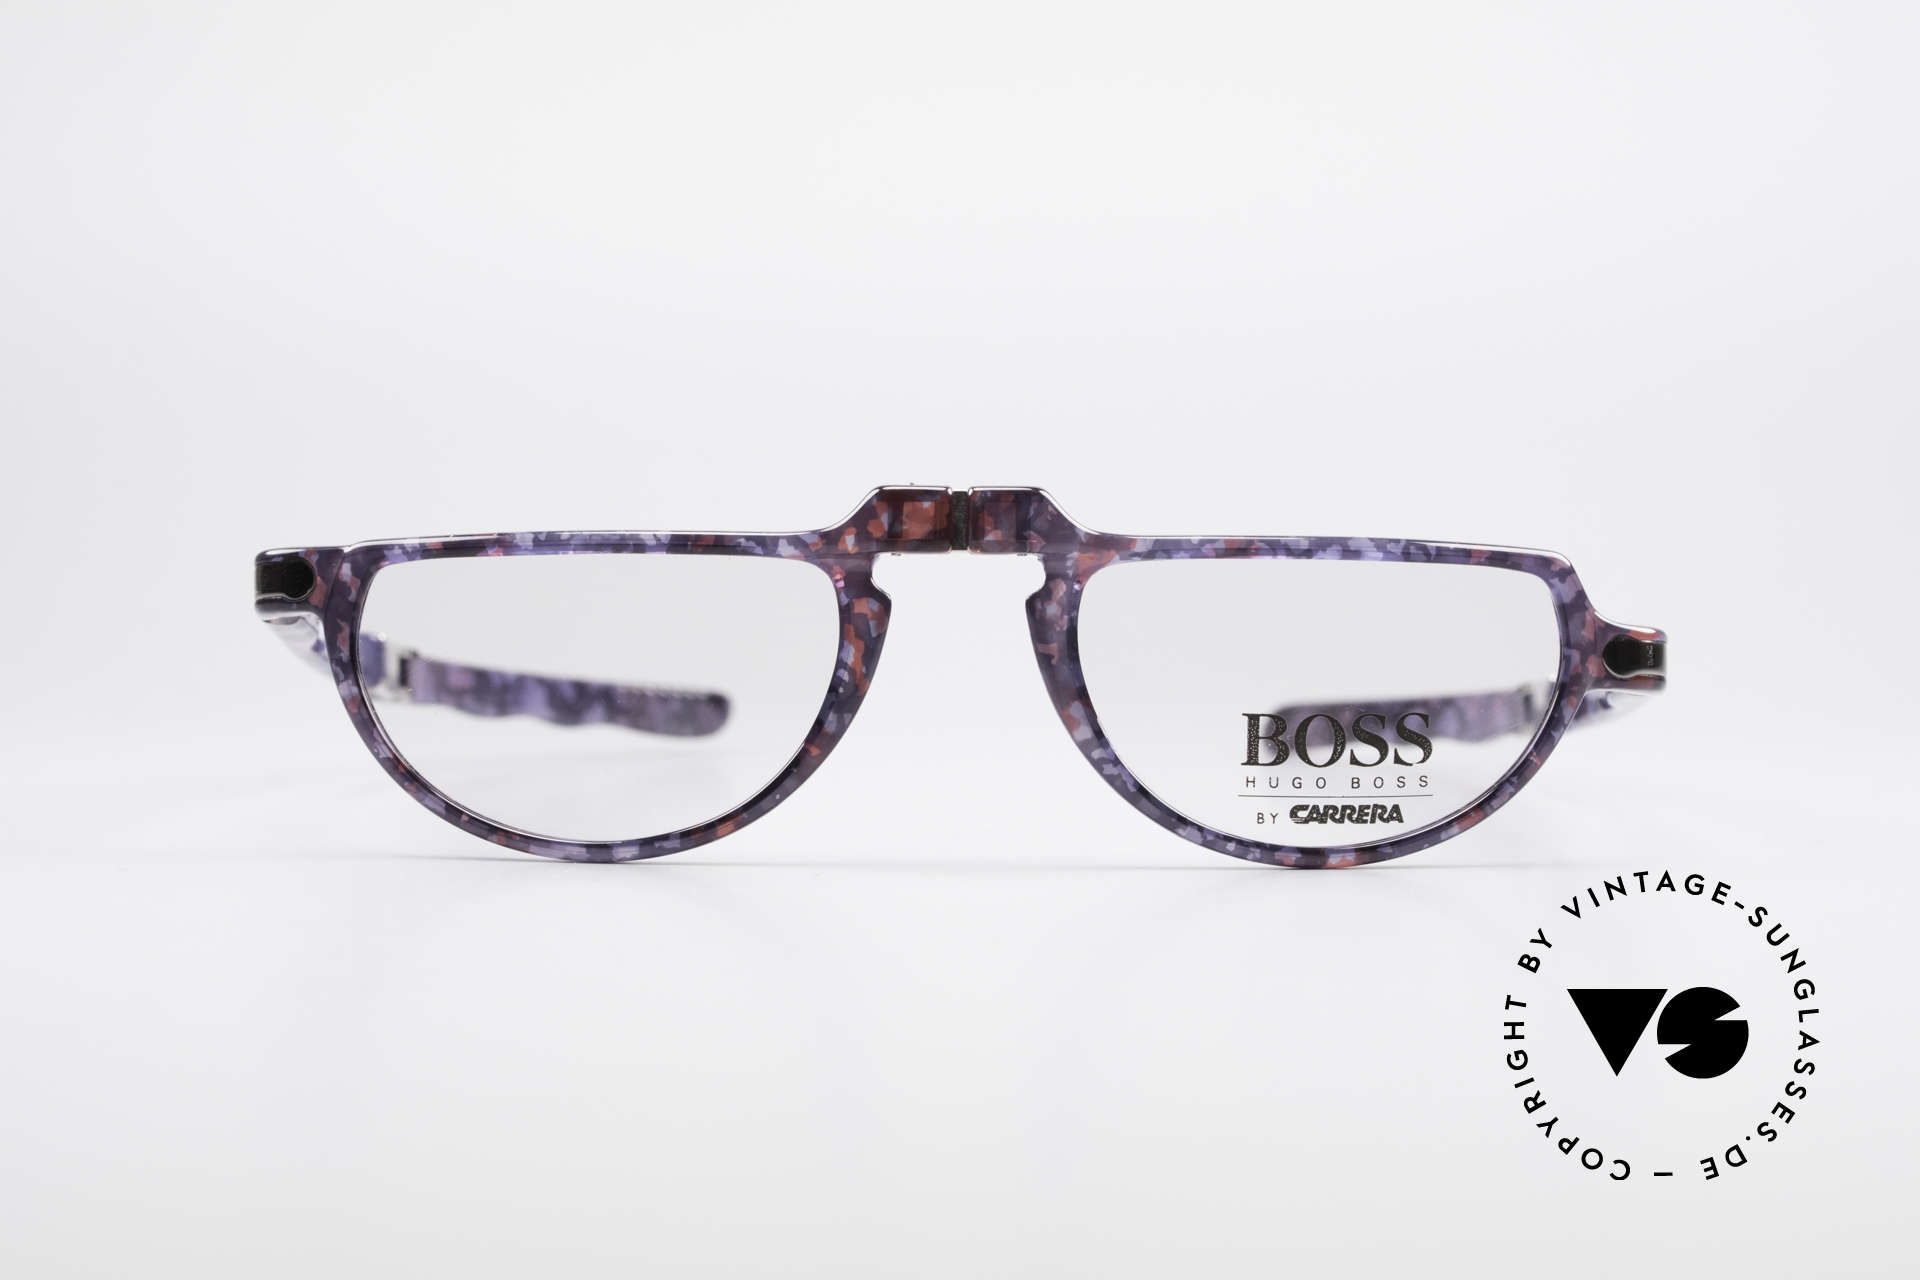 BOSS 5103 Folding Reading Eyeglasses, cooperation between BOSS & Carrera, at that time, Made for Men and Women